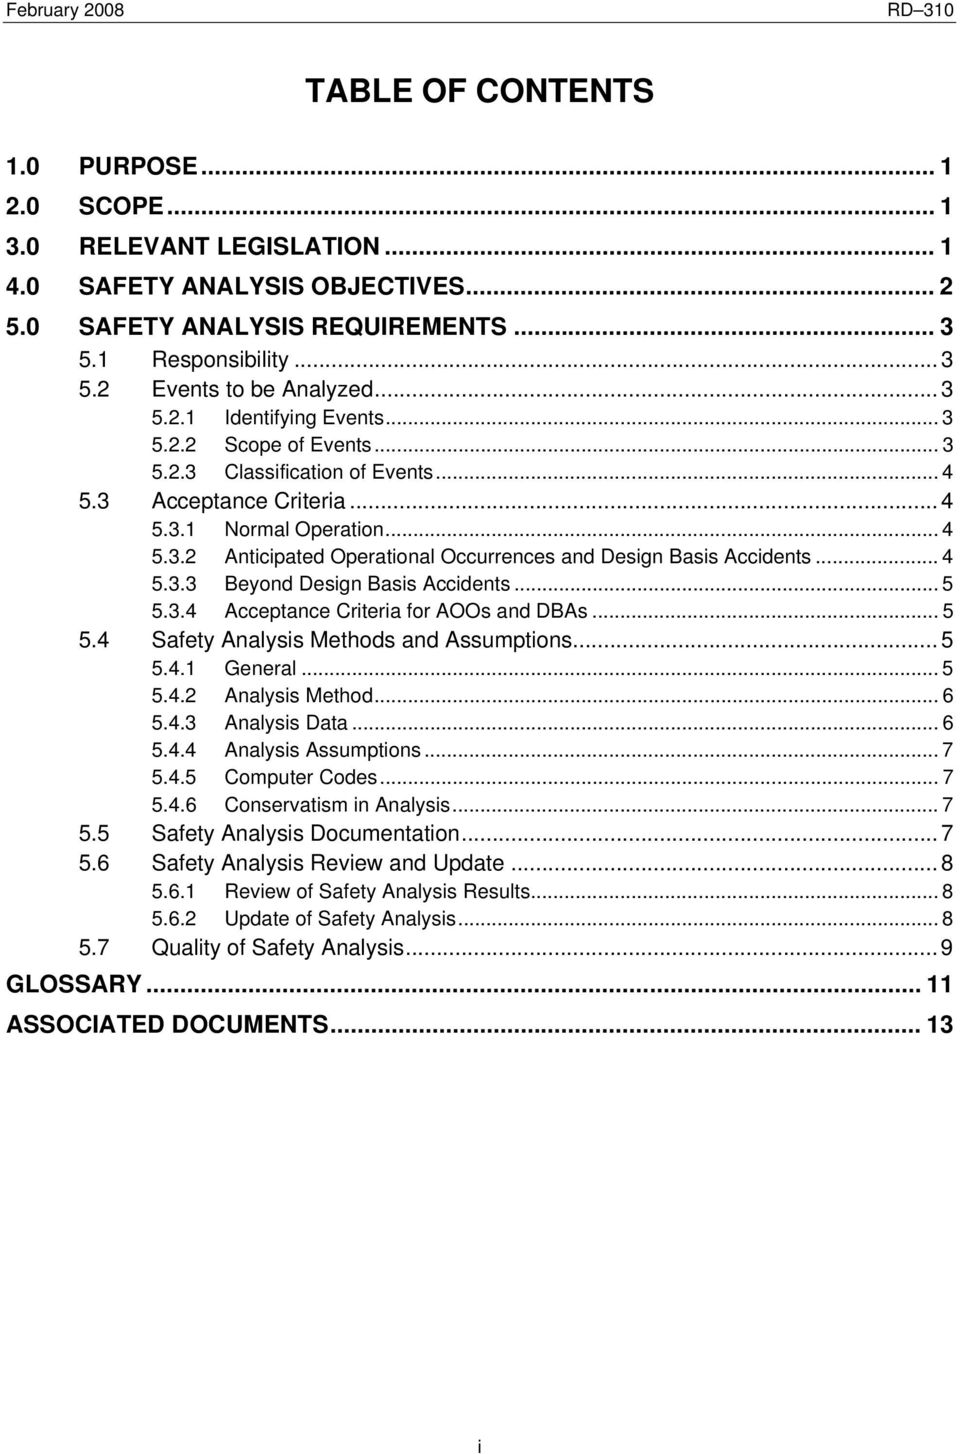 .. 4 5.3.3 Beyond Design Basis Accidents... 5 5.3.4 Acceptance Criteria for AOOs and DBAs... 5 5.4 Safety Analysis Methods and Assumptions... 5 5.4.1 General... 5 5.4.2 Analysis Method... 6 5.4.3 Analysis Data.